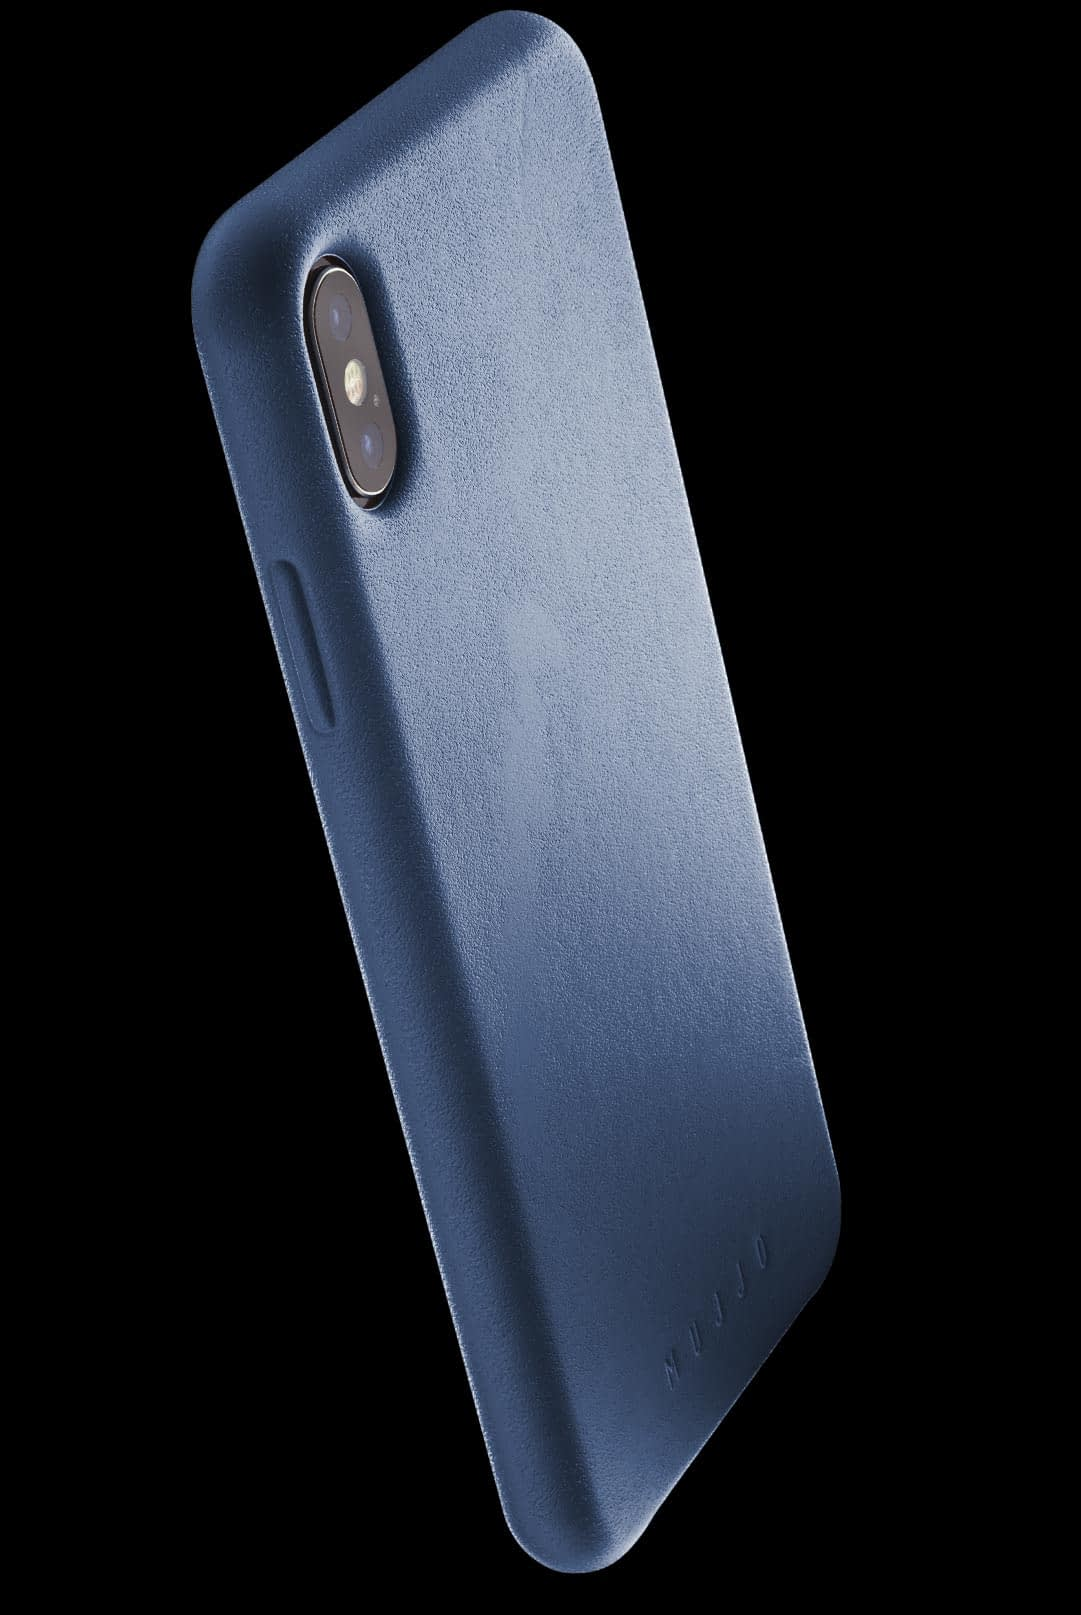 full leather case for iphone Xs Max blue 002